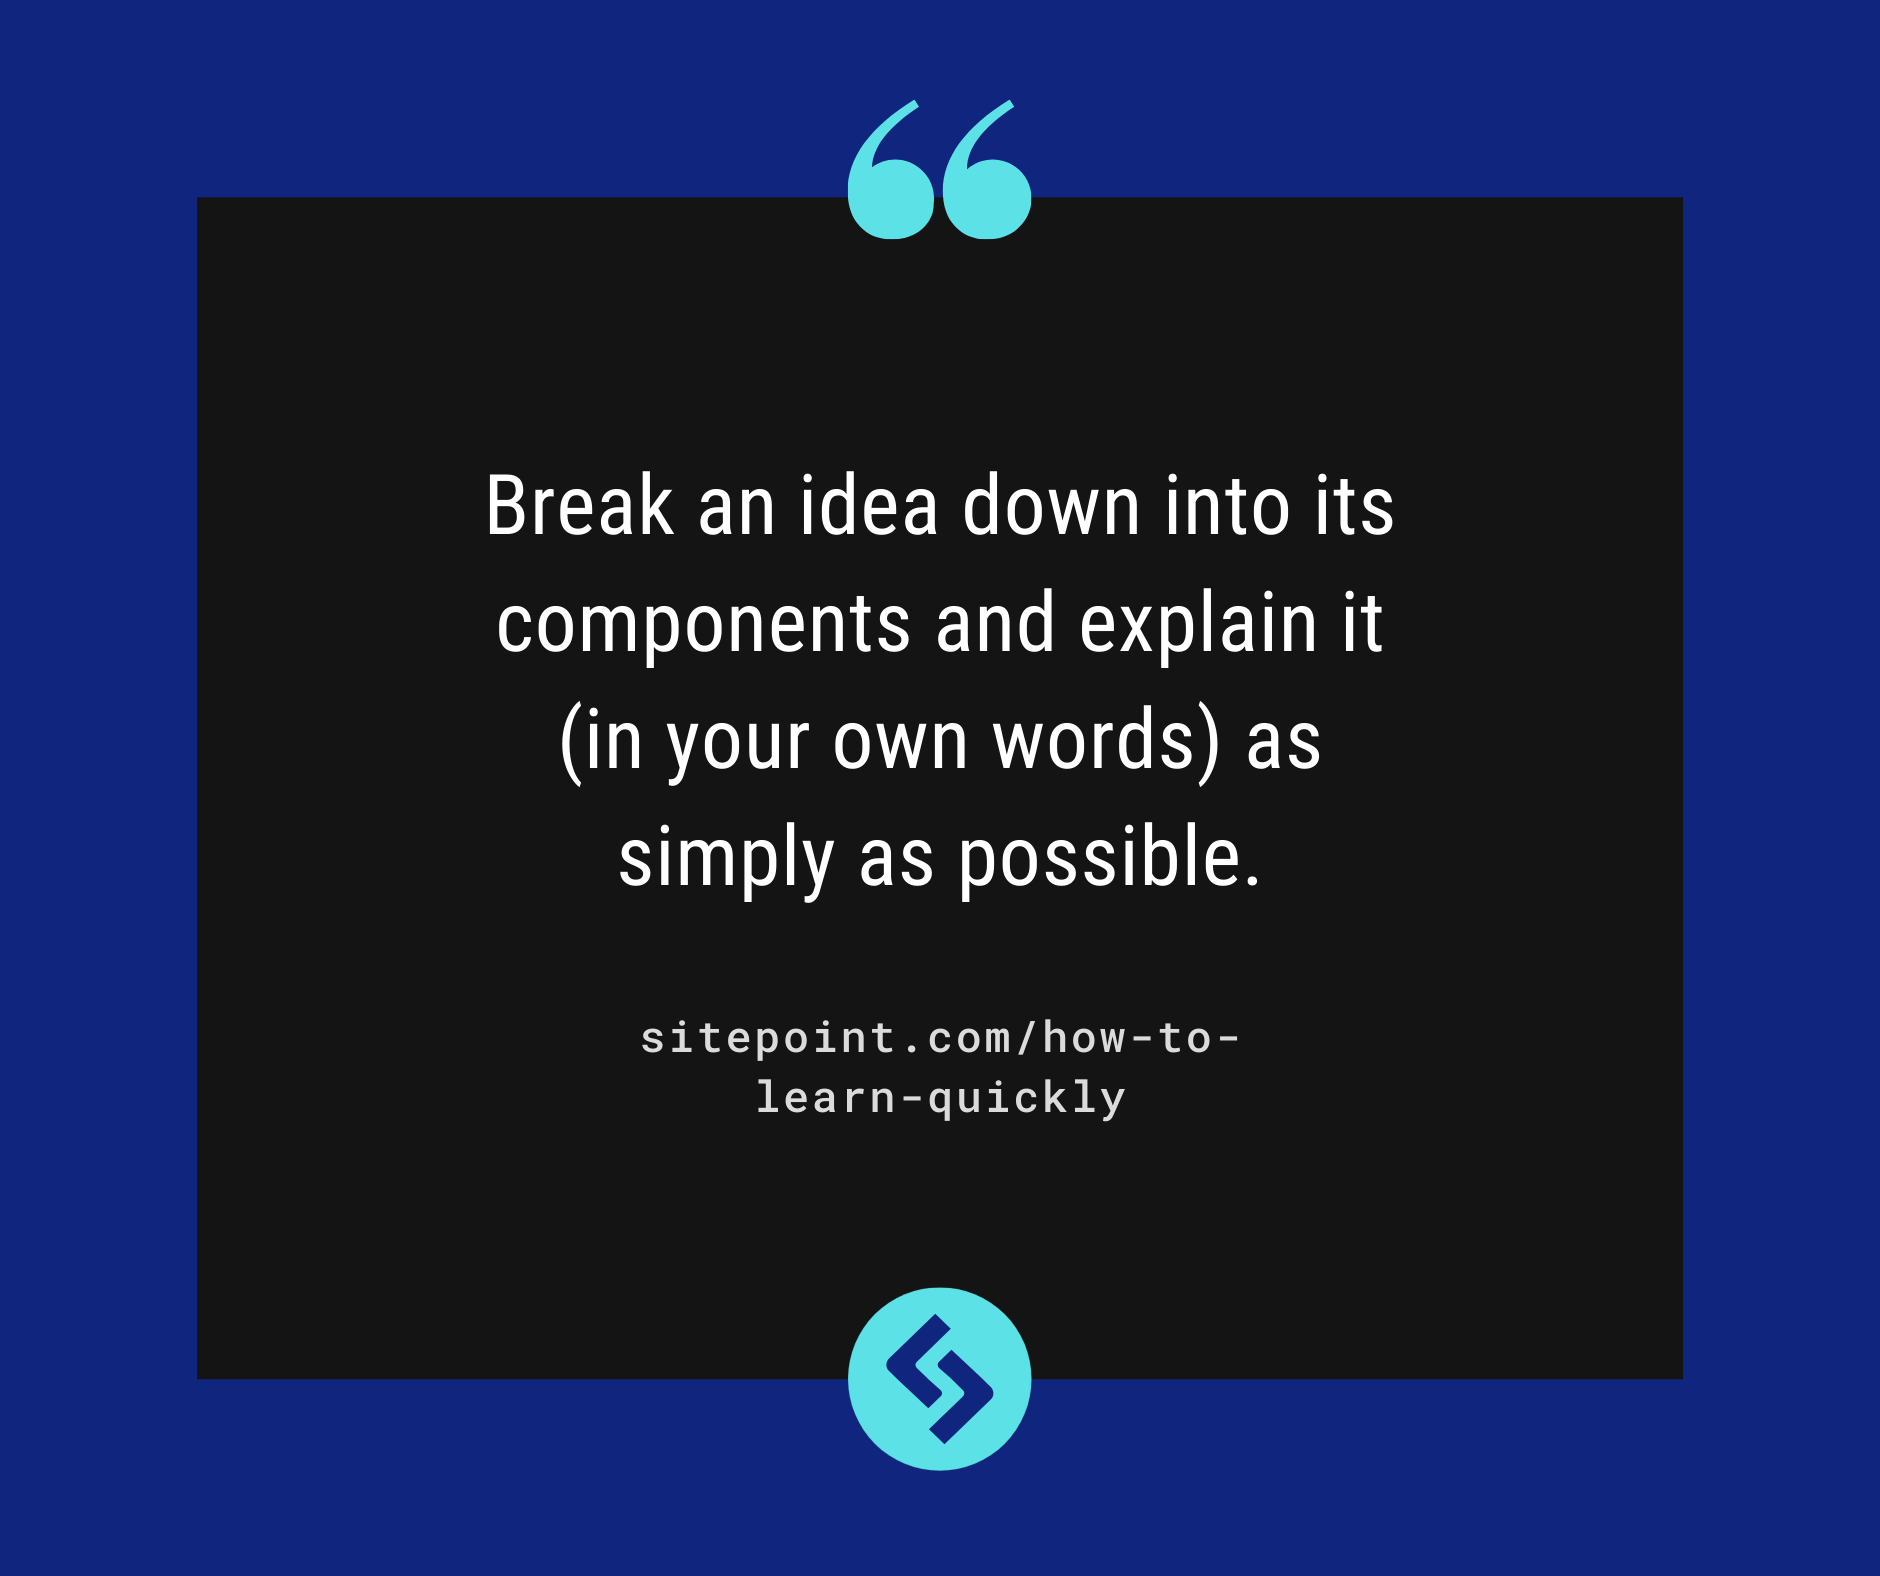 Break an idea down into its components and explain it (in your own words) as simply as possible.